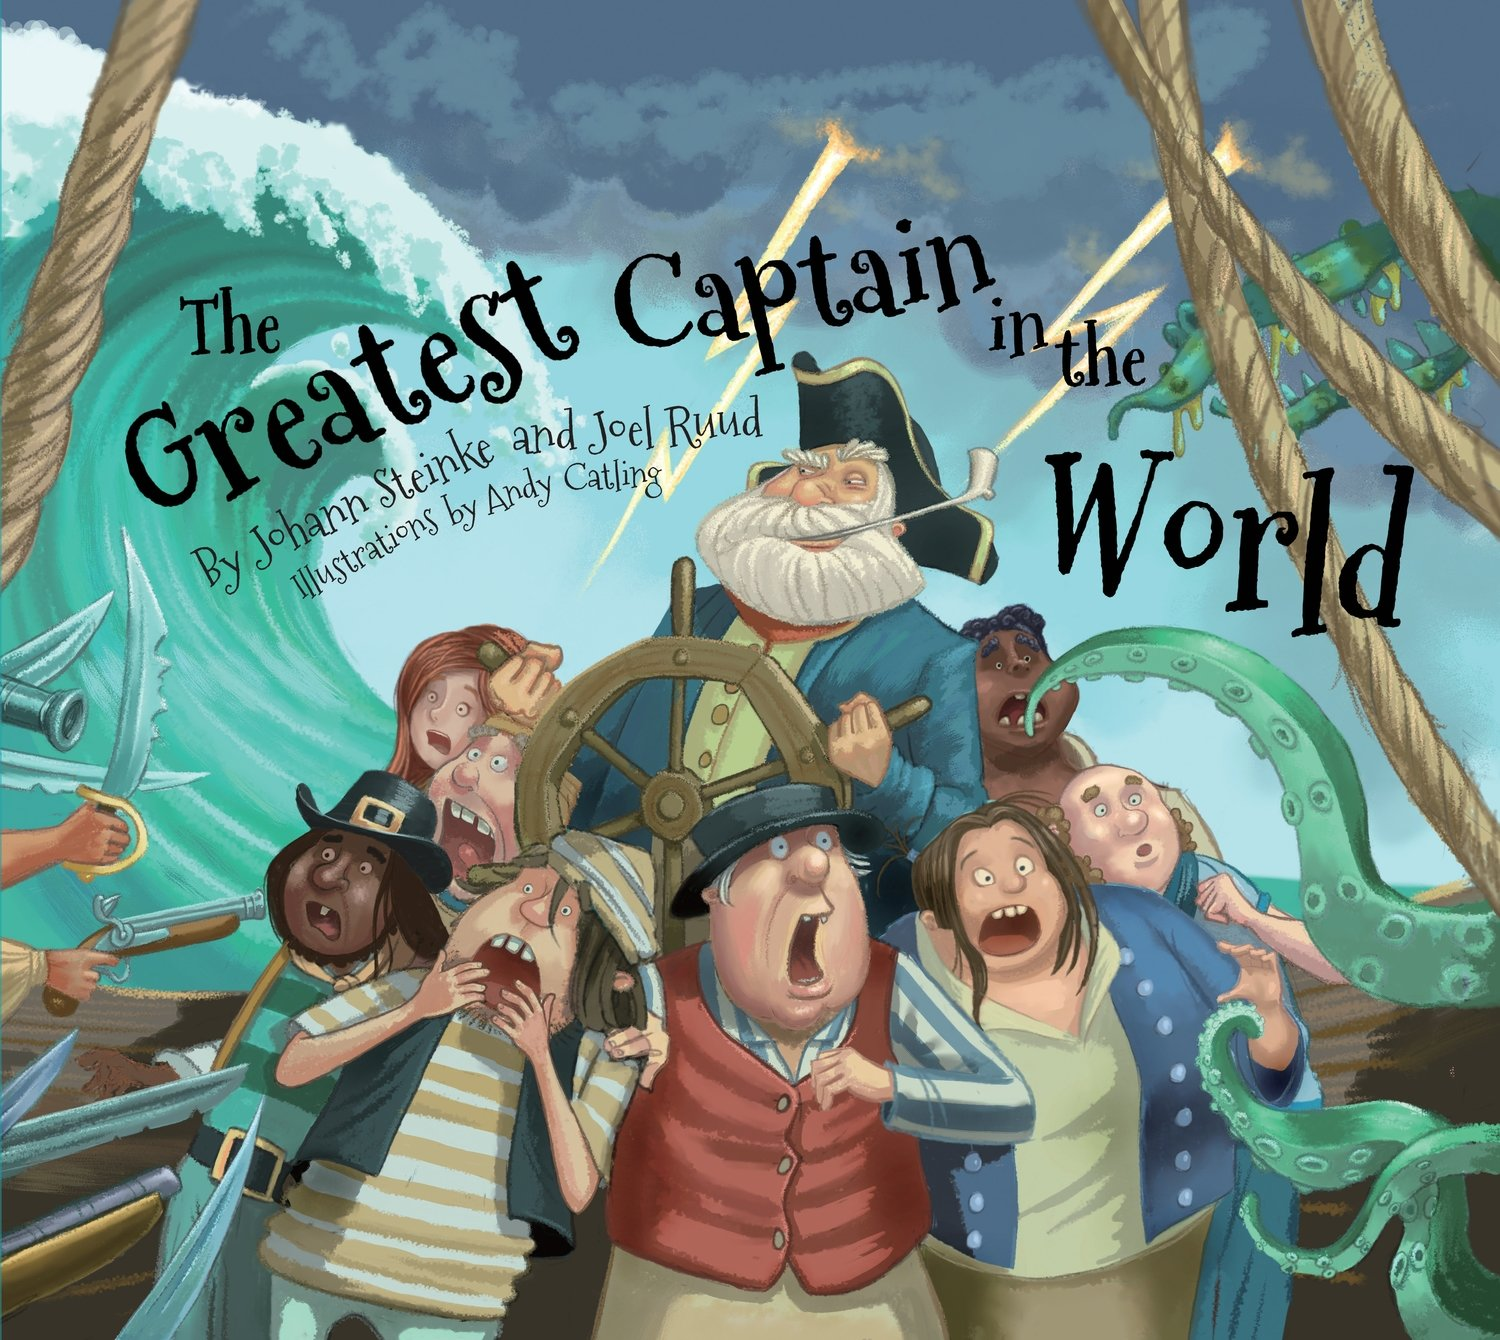 The Greatest Captain in the World Book